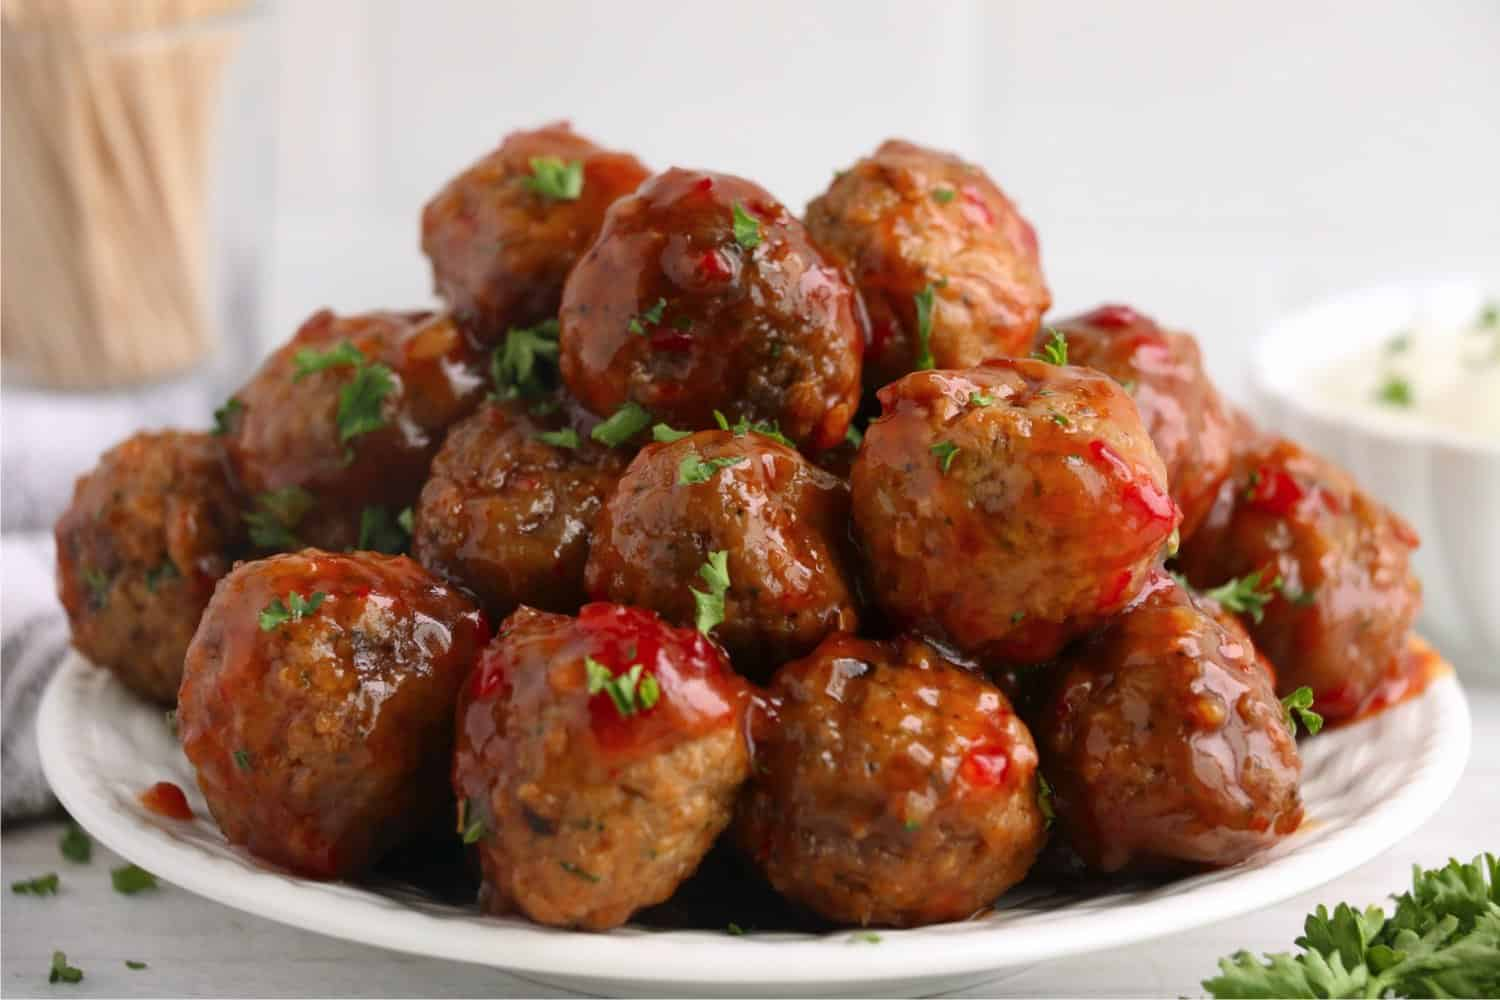 A pile of cooked sweet chili meatballs lightly garnished with parsley, ready to be eaten.